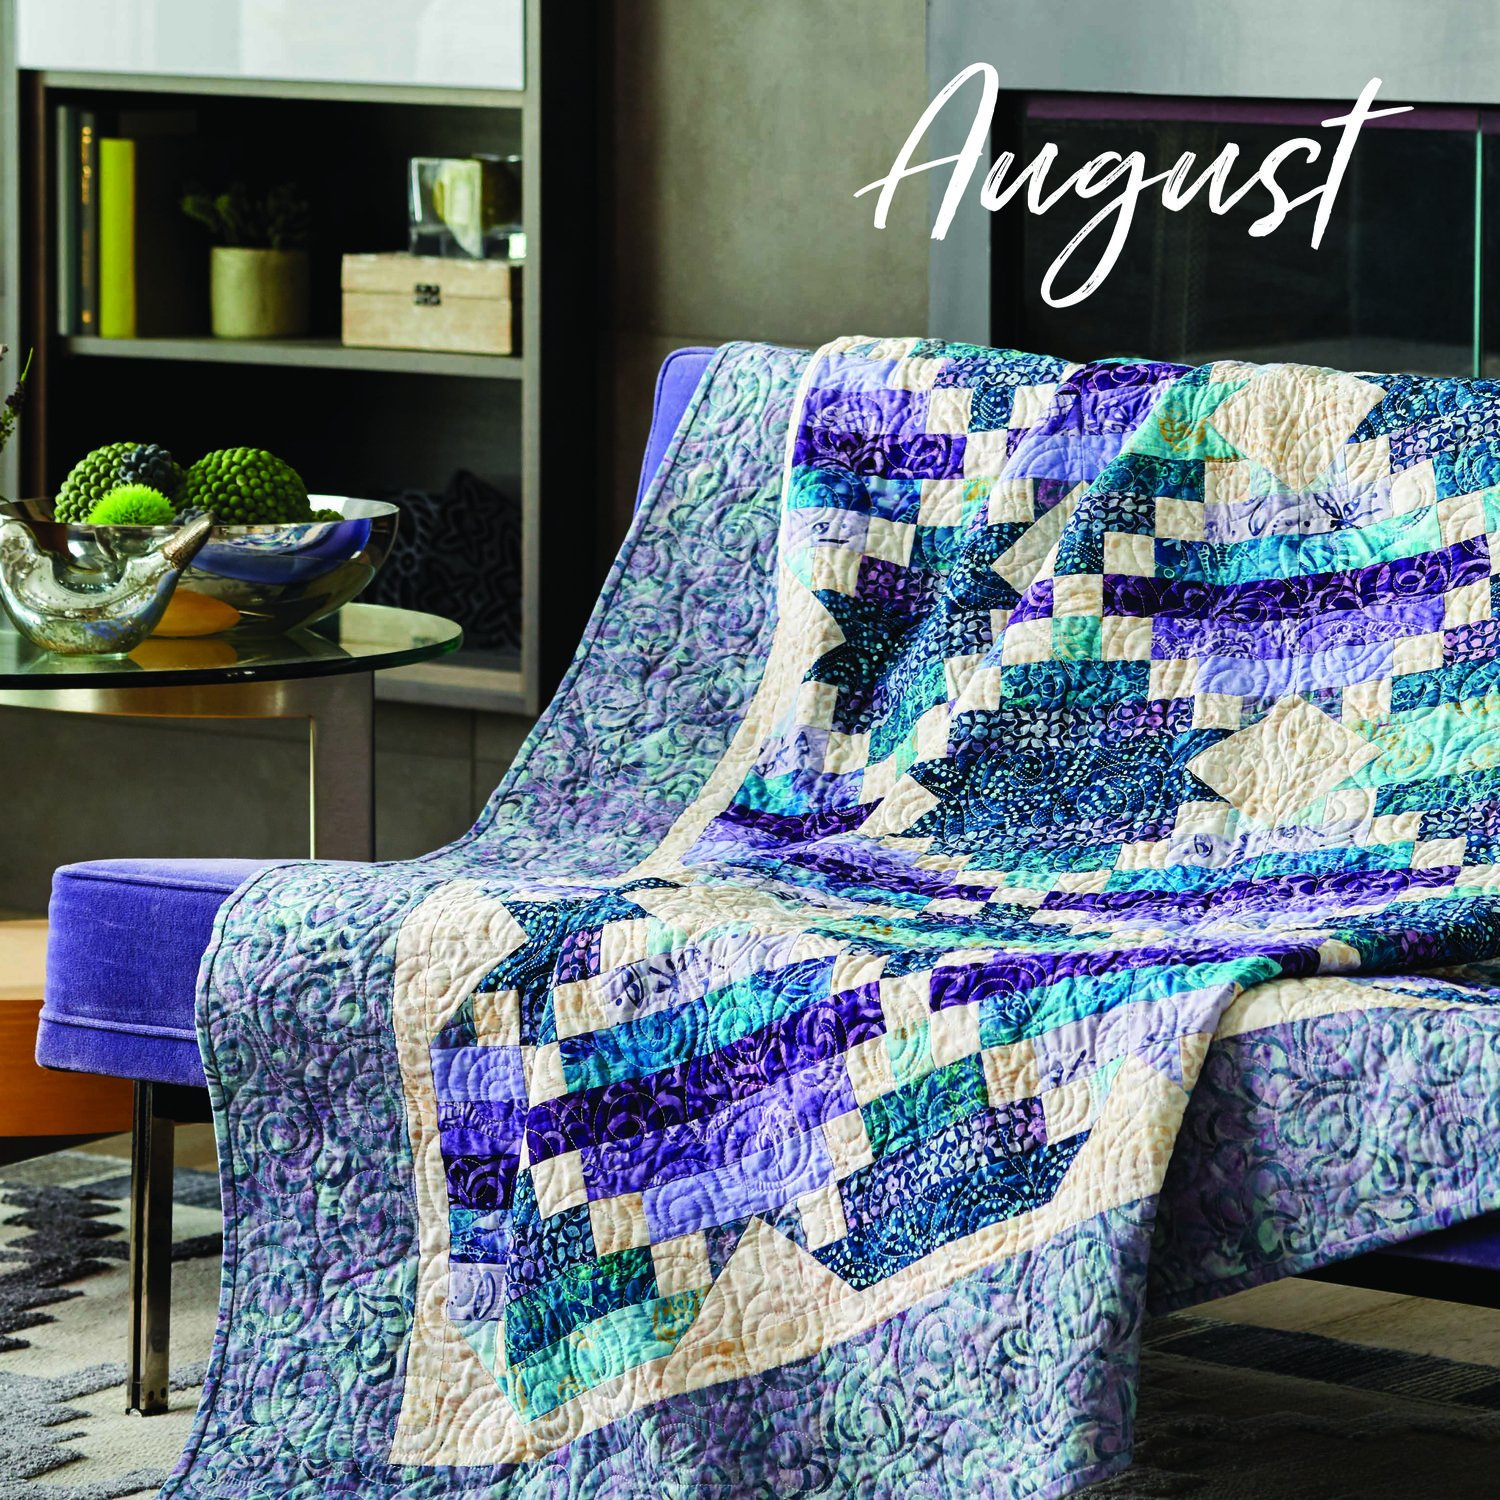 2020 American Patchwork & Quilting